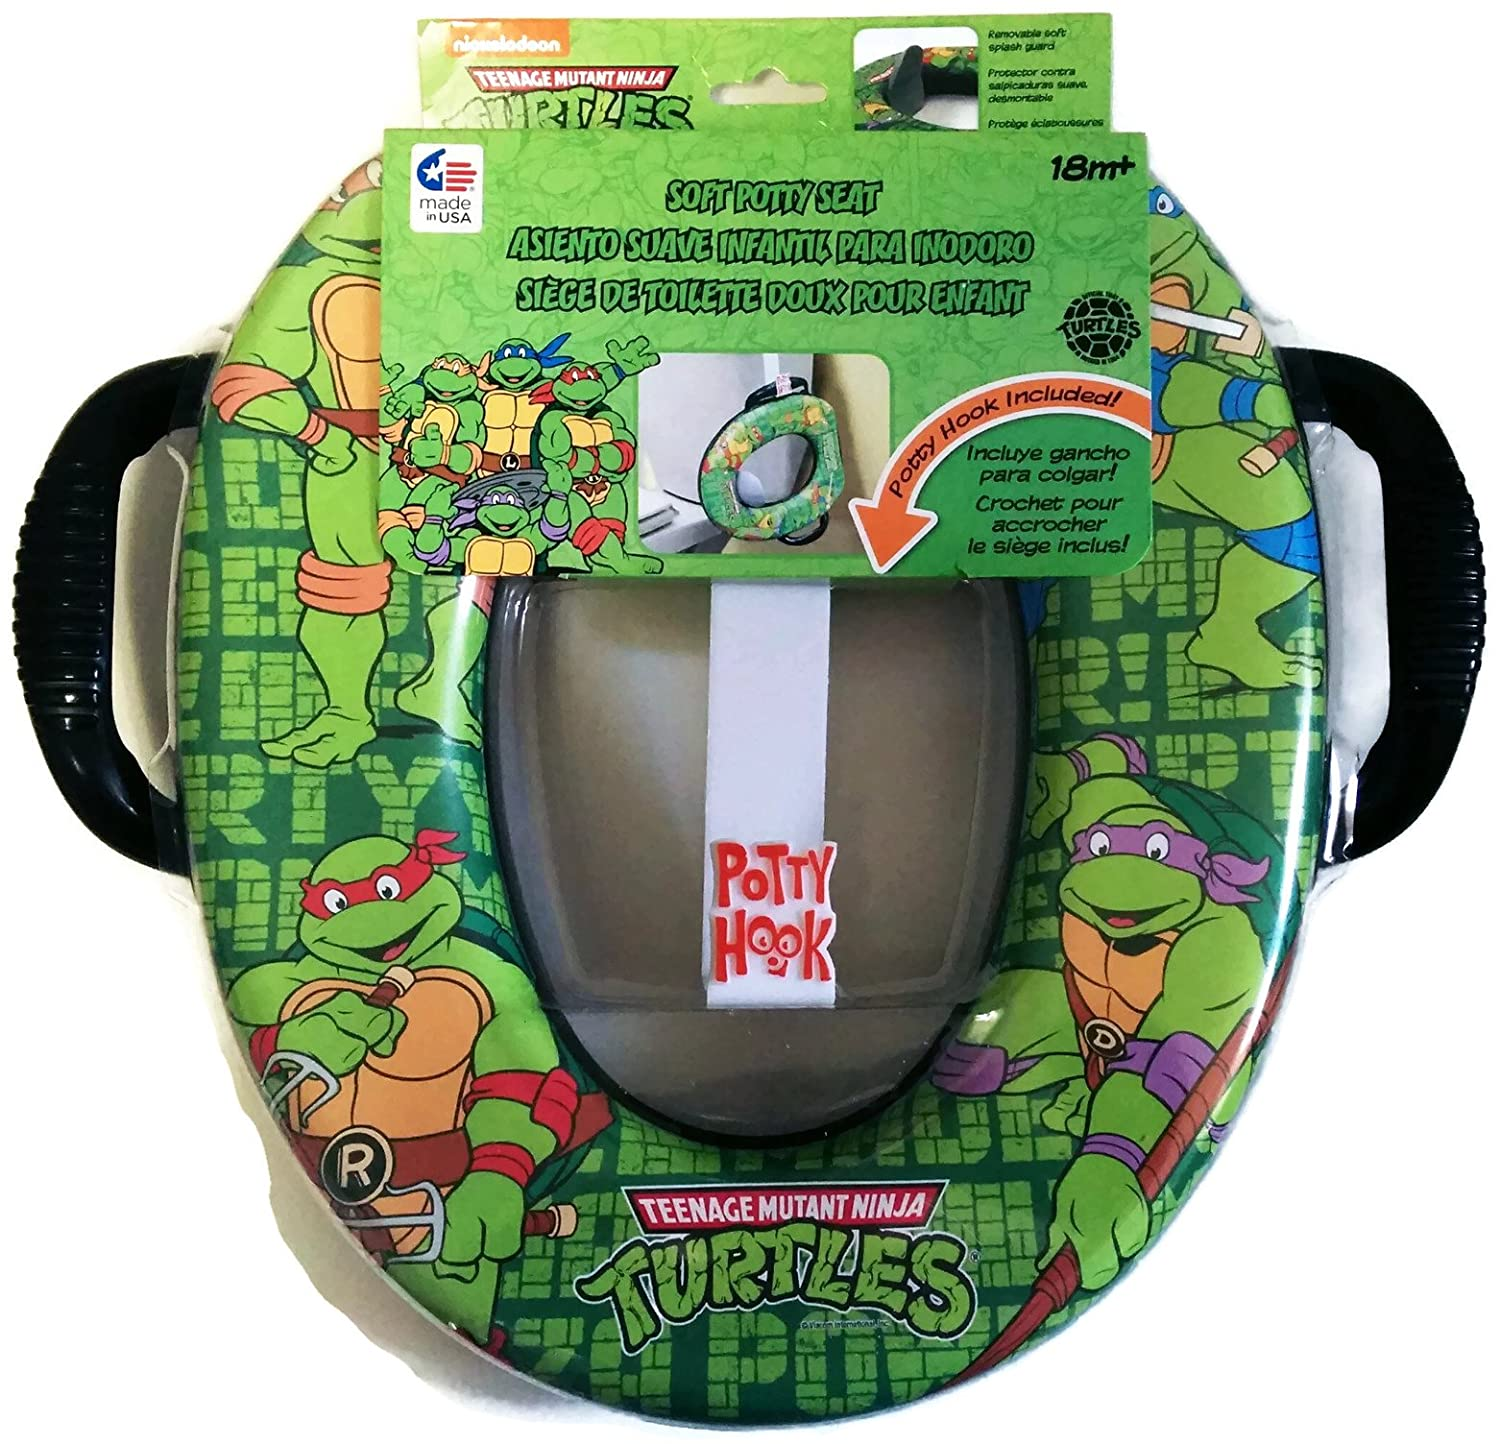 Teenage Mutant Ninja Turtles Soft Potty Seat with Potty Hook for Hanging Ginsey Home Solutions